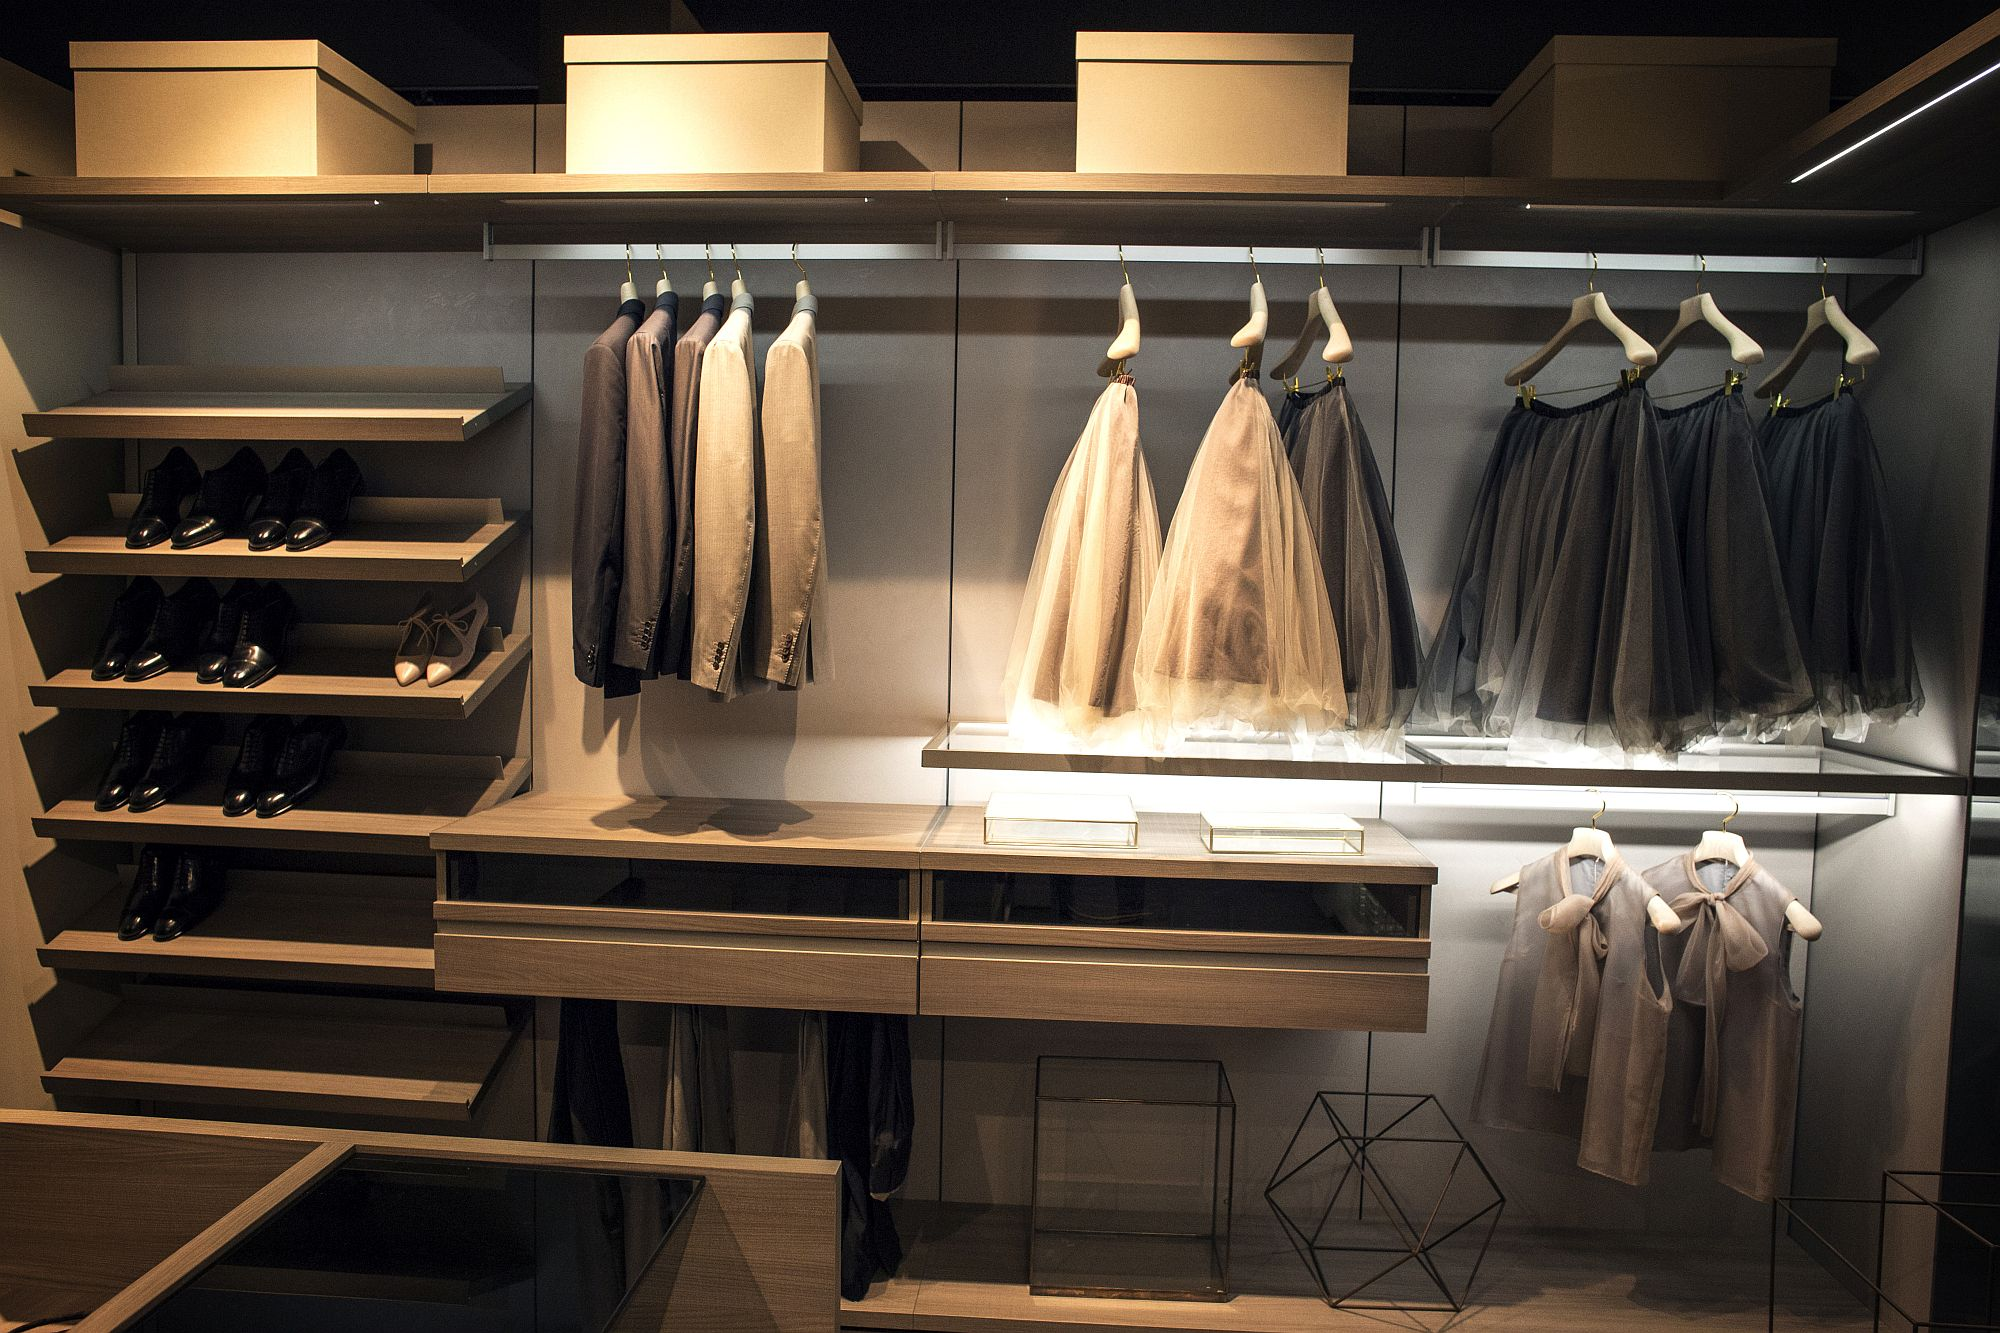 Stunning lighting adds to the brilliance of the walk-in closet